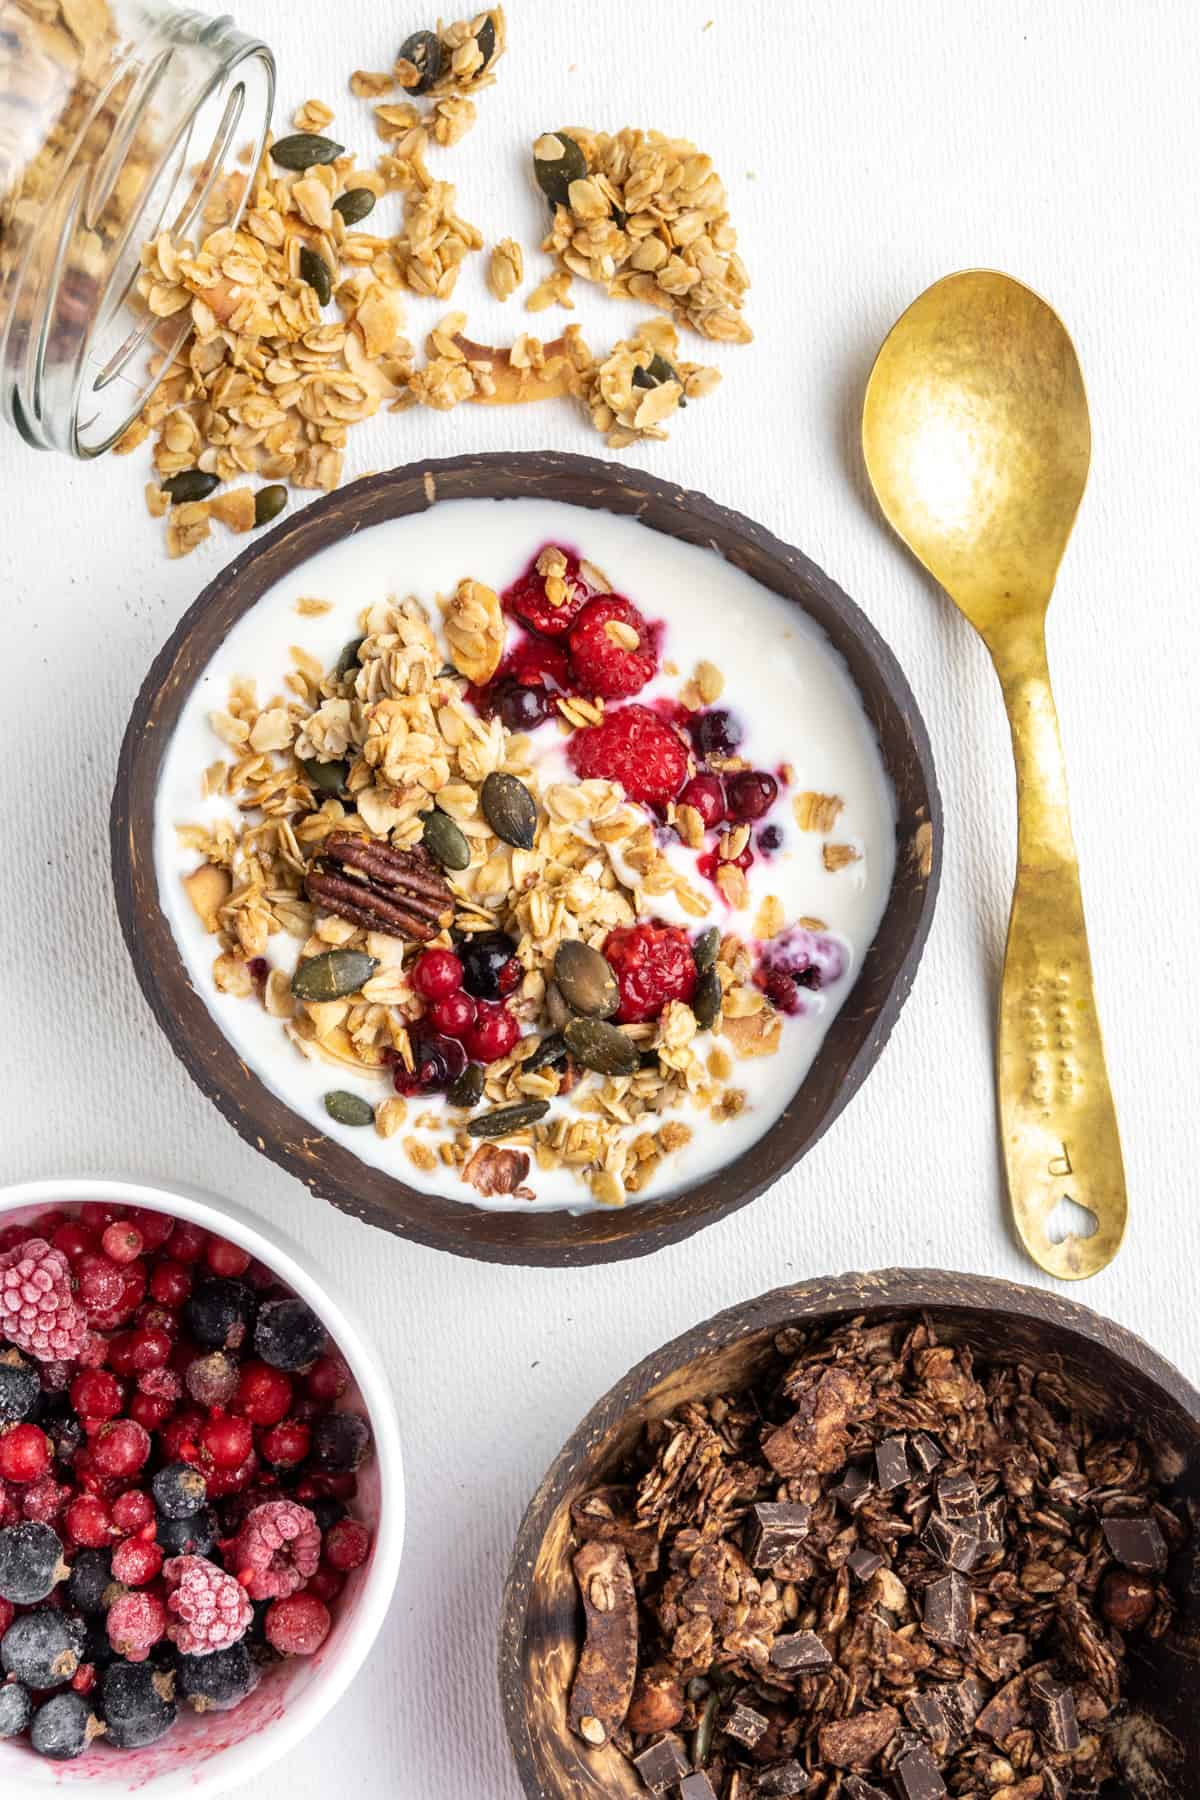 In the center, a serving of granola with red berries and soy yoghurt in a coconut bowl. Around it, cocoa and chocolate flavoured granola in another coconut bowl, a smaller bowl of red fruit, a jar from which granola spills out and a golden spoon.